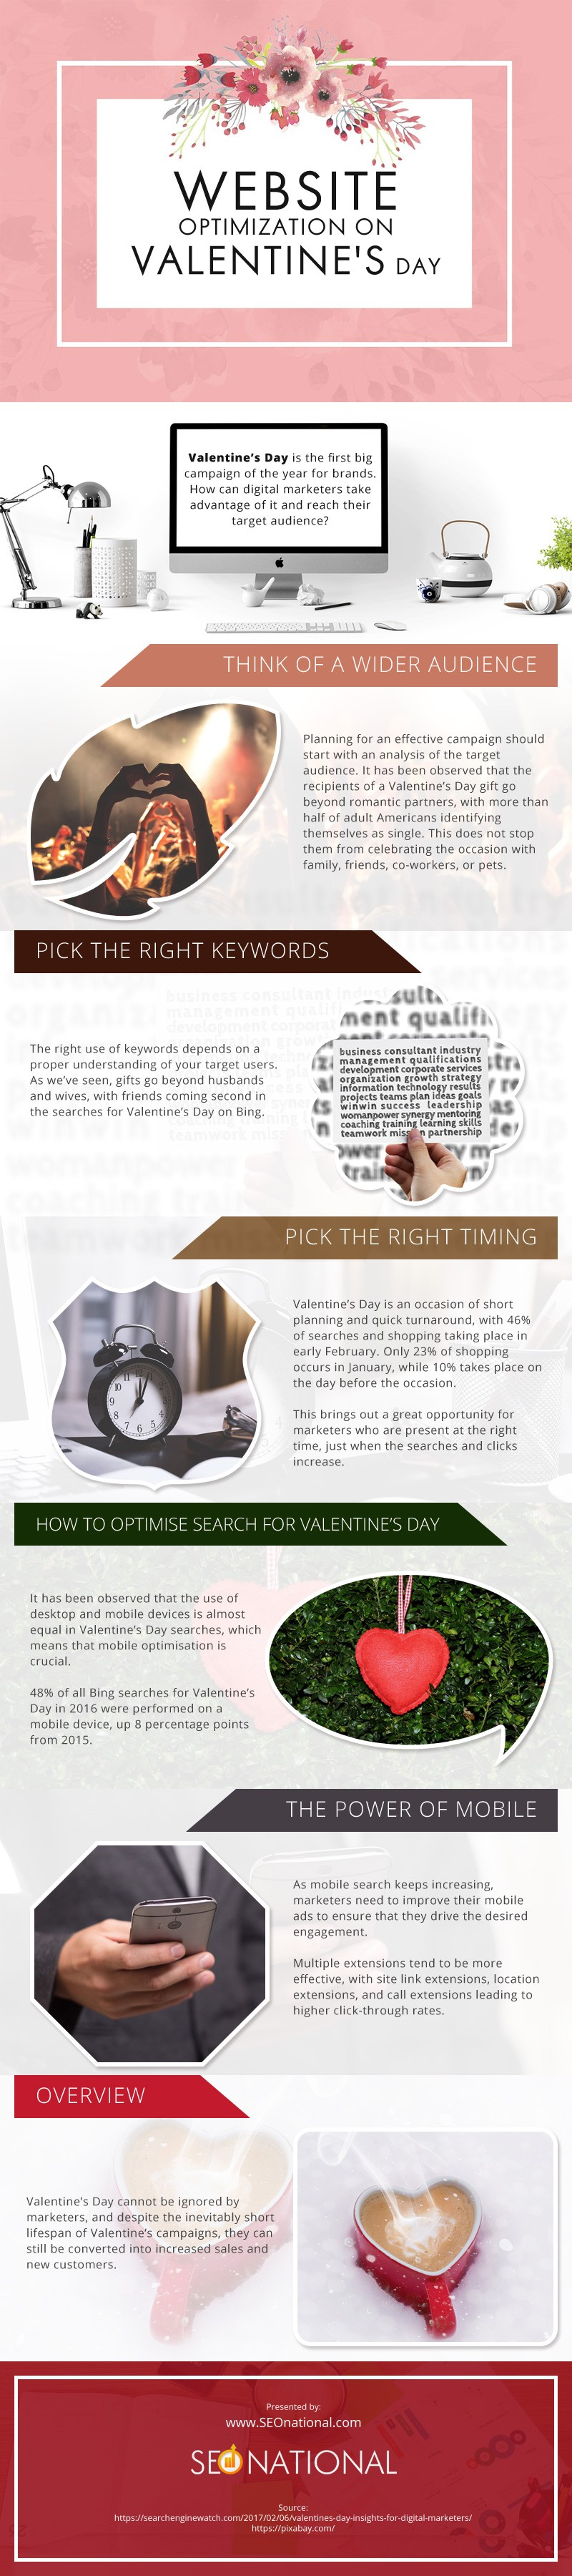 Website Optimization on Valentine's Day